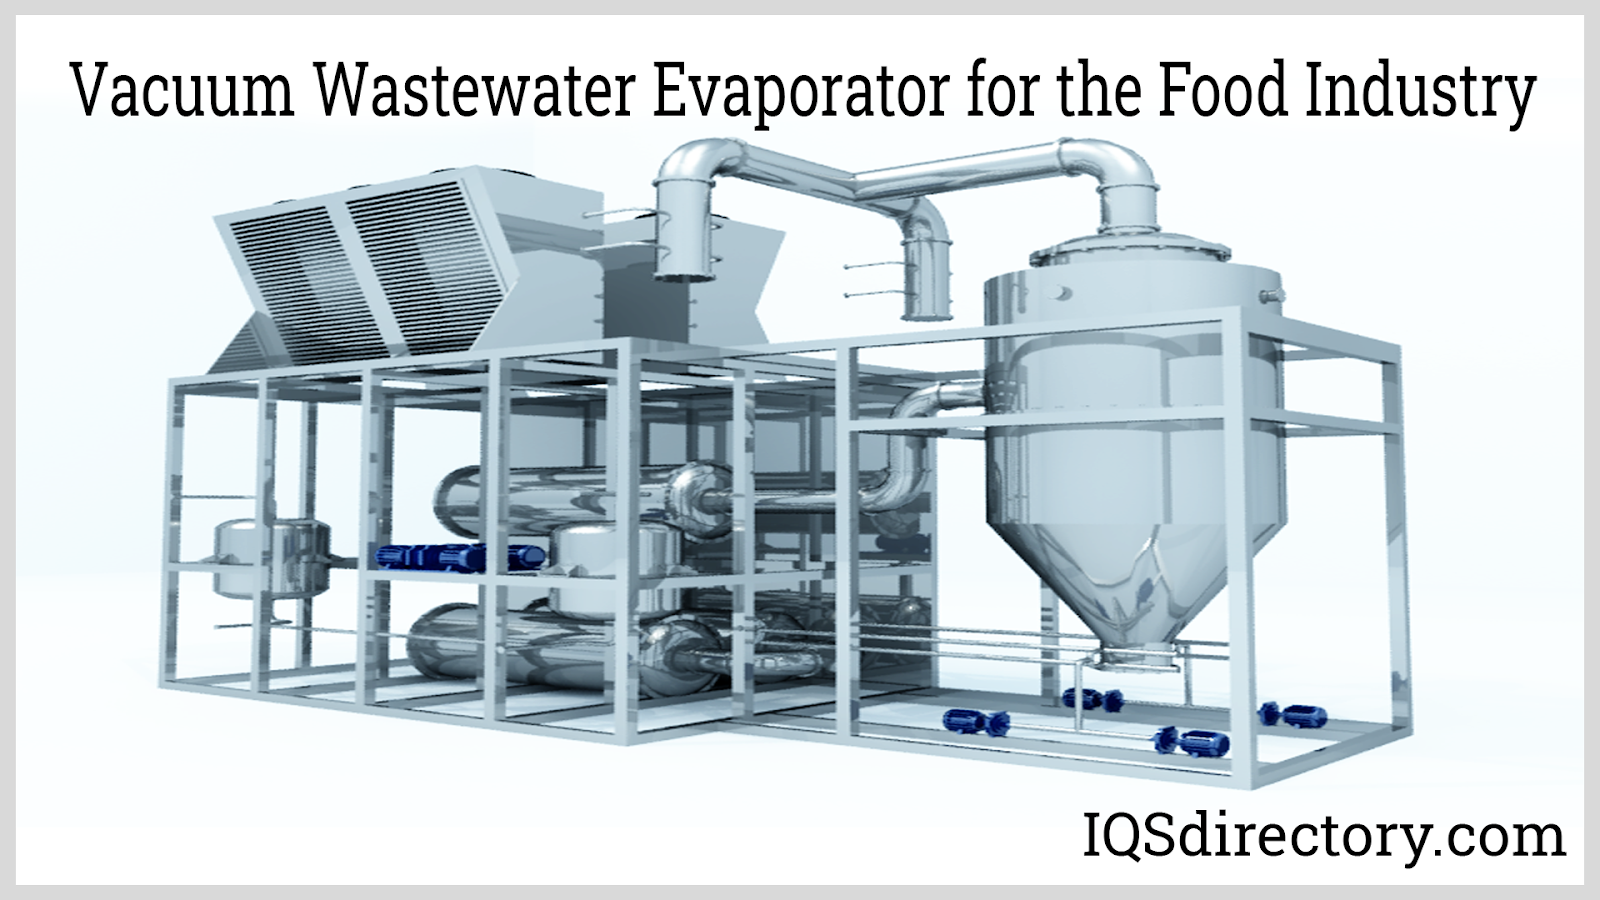 Vacuum Wastewater Evaporator for the Food Industry